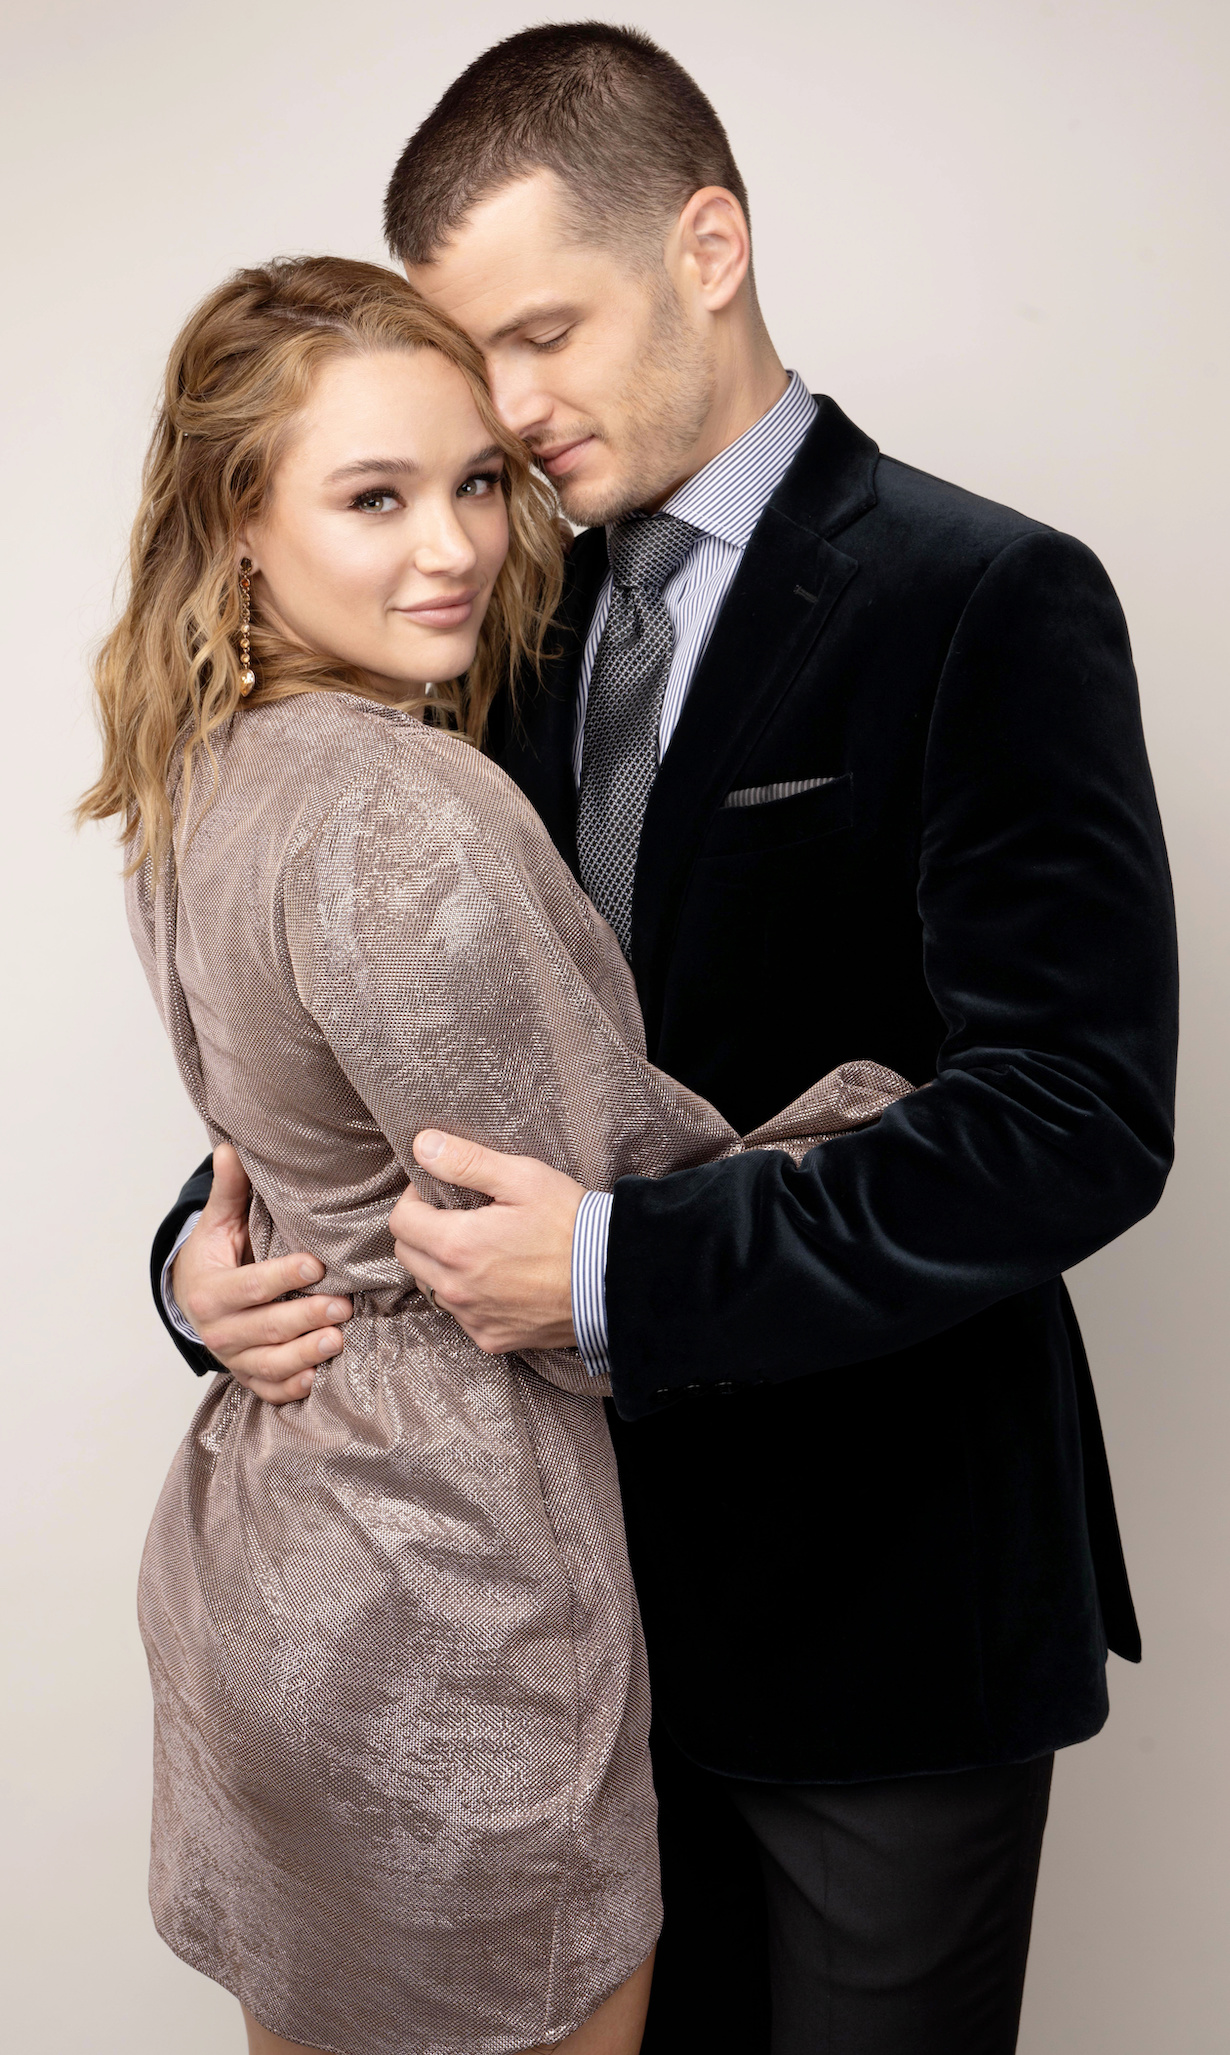 """Hunter King, Michael Mealor """"The Young and the Restless"""" Set CBS television City Los Angeles 09/10/21 © Howard Wise/jpistudios.com 310-657-9661"""